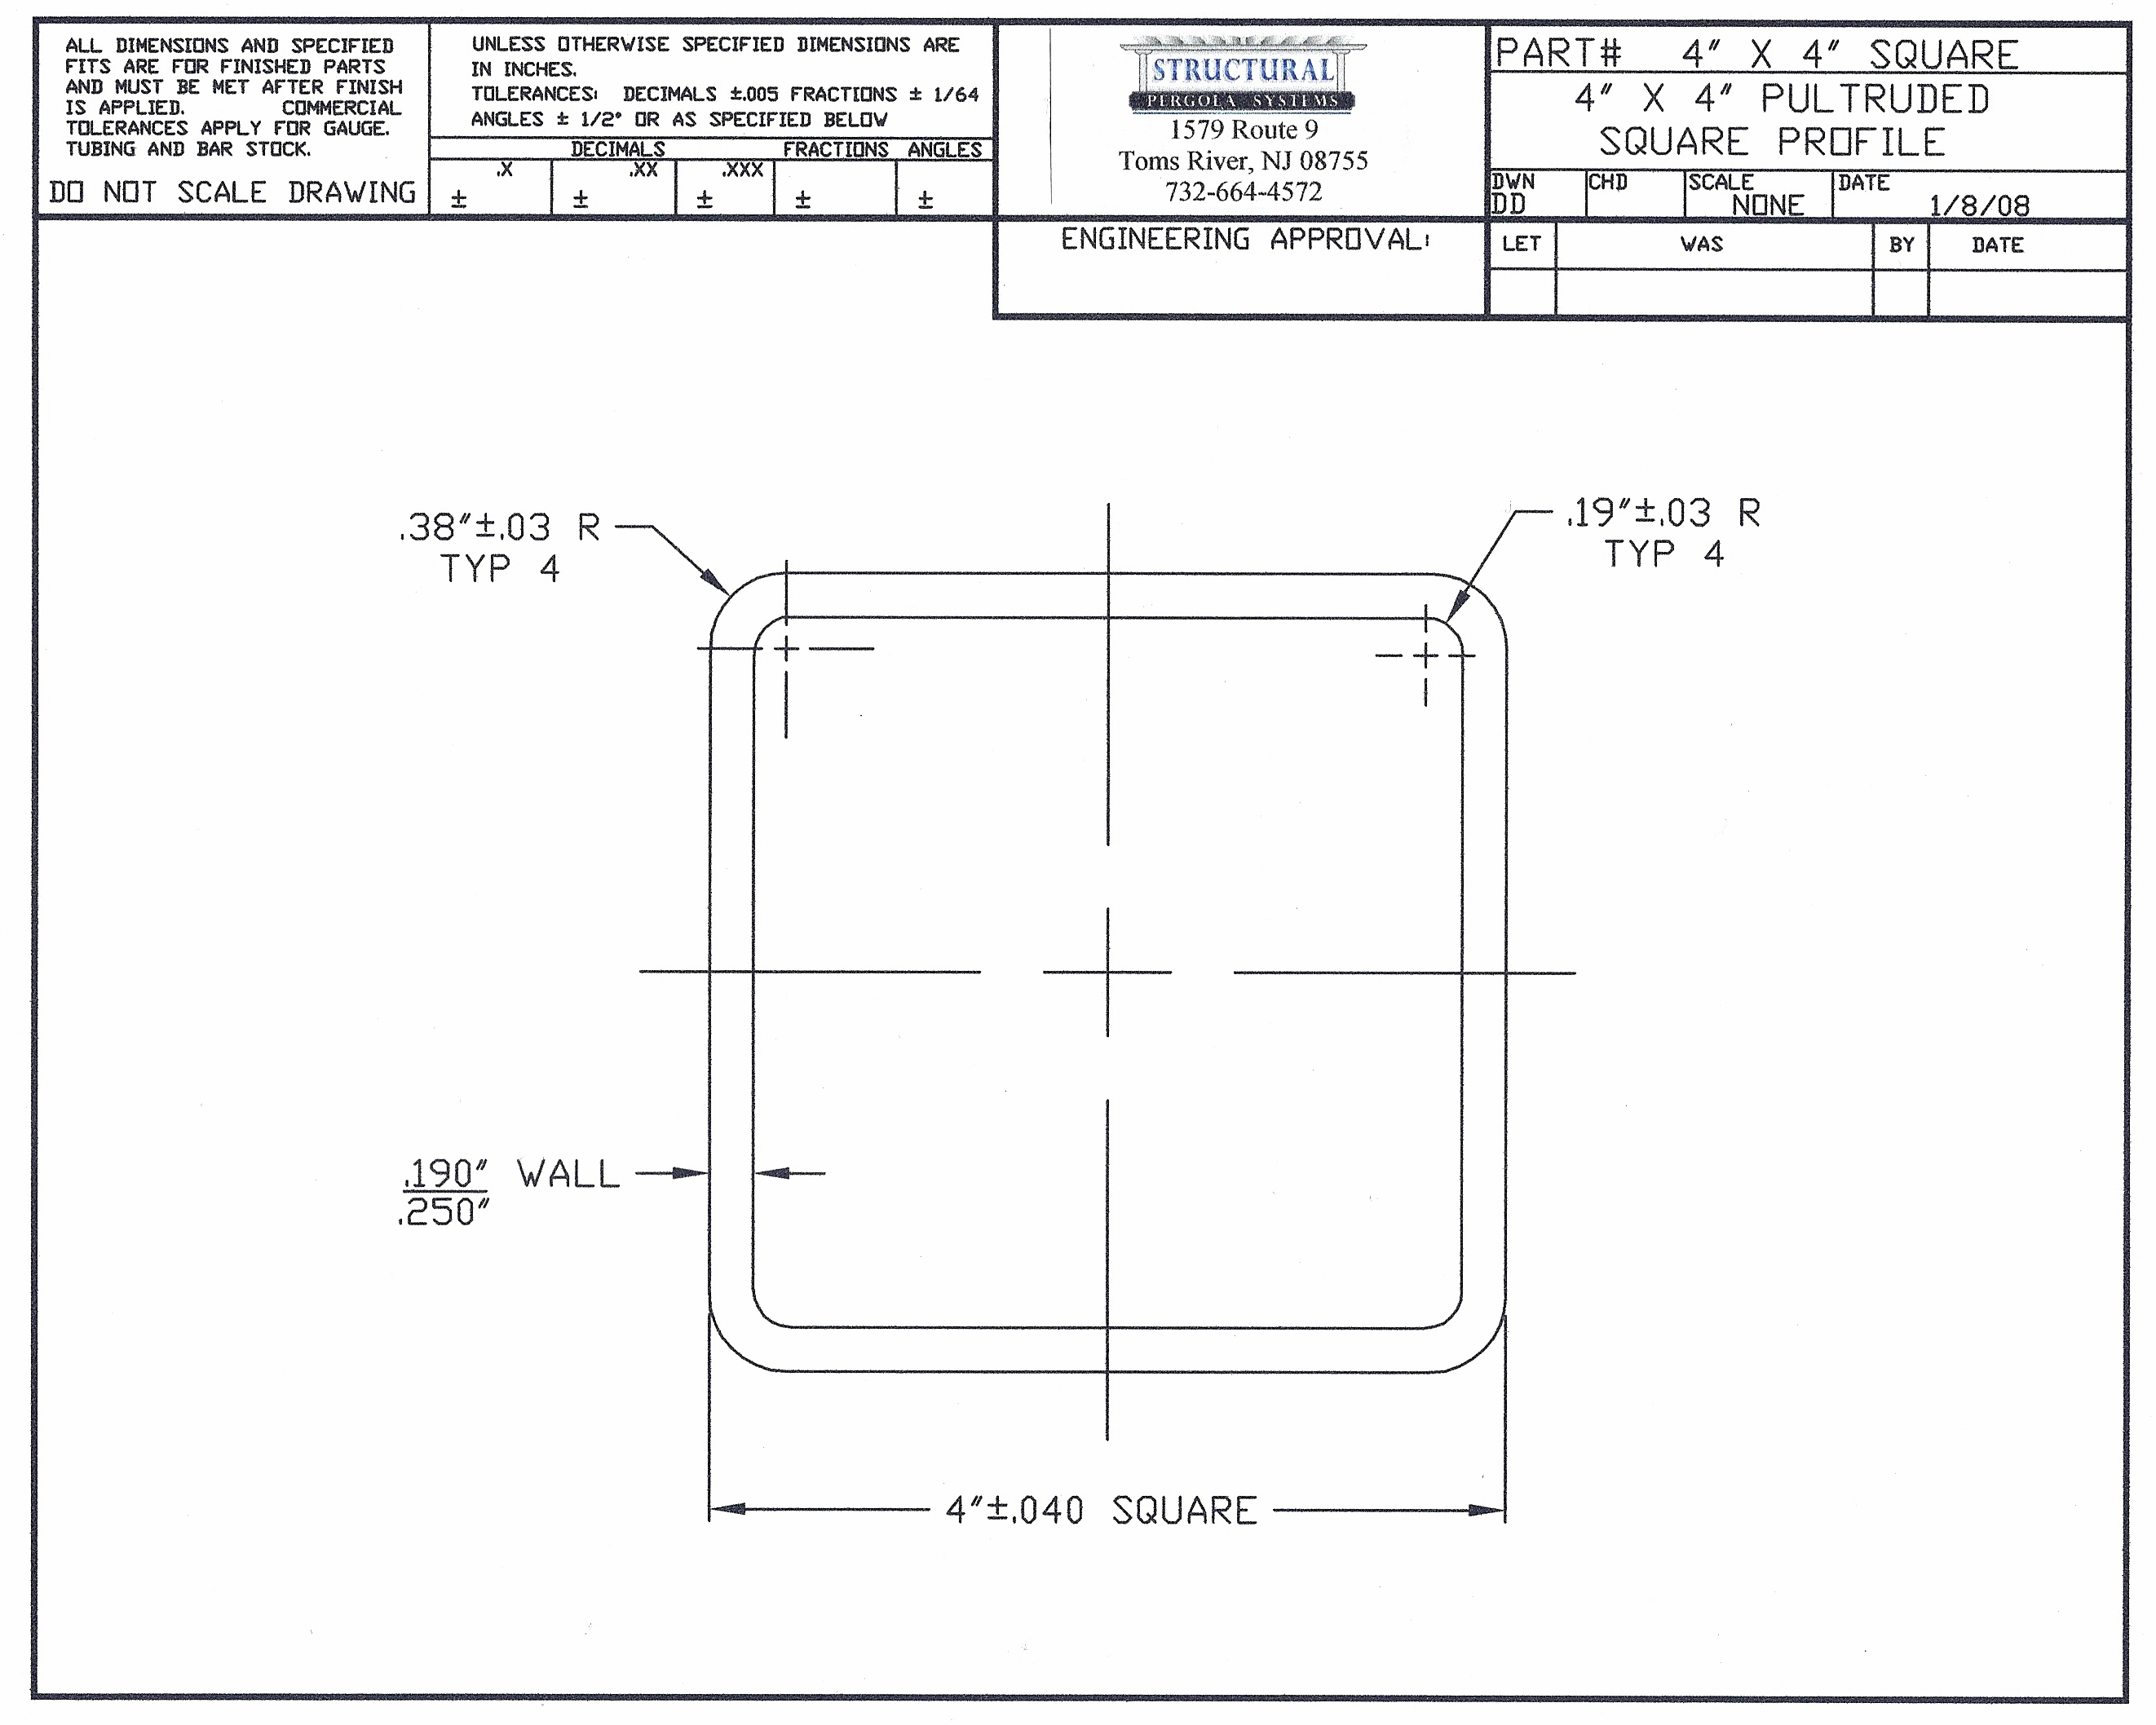 Specs Structural Pergola Systems